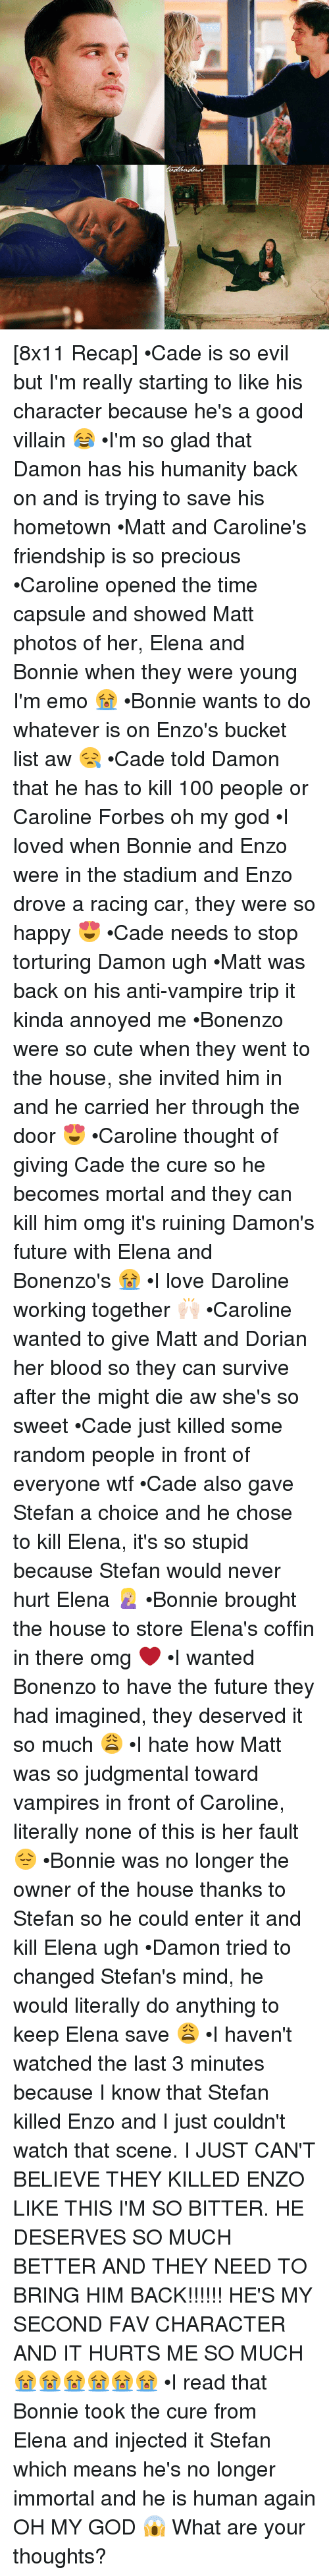 Bucket List, Memes, and Forbes: K [8x11 Recap] •Cade is so evil but I'm really starting to like his character because he's a good villain 😂 •I'm so glad that Damon has his humanity back on and is trying to save his hometown •Matt and Caroline's friendship is so precious •Caroline opened the time capsule and showed Matt photos of her, Elena and Bonnie when they were young I'm emo 😭 •Bonnie wants to do whatever is on Enzo's bucket list aw 😪 •Cade told Damon that he has to kill 100 people or Caroline Forbes oh my god •I loved when Bonnie and Enzo were in the stadium and Enzo drove a racing car, they were so happy 😍 •Cade needs to stop torturing Damon ugh •Matt was back on his anti-vampire trip it kinda annoyed me •Bonenzo were so cute when they went to the house, she invited him in and he carried her through the door 😍 •Caroline thought of giving Cade the cure so he becomes mortal and they can kill him omg it's ruining Damon's future with Elena and Bonenzo's 😭 •I love Daroline working together 🙌🏻 •Caroline wanted to give Matt and Dorian her blood so they can survive after the might die aw she's so sweet •Cade just killed some random people in front of everyone wtf •Cade also gave Stefan a choice and he chose to kill Elena, it's so stupid because Stefan would never hurt Elena 🤦🏼‍♀️ •Bonnie brought the house to store Elena's coffin in there omg ❤ •I wanted Bonenzo to have the future they had imagined, they deserved it so much 😩 •I hate how Matt was so judgmental toward vampires in front of Caroline, literally none of this is her fault 😔 •Bonnie was no longer the owner of the house thanks to Stefan so he could enter it and kill Elena ugh •Damon tried to changed Stefan's mind, he would literally do anything to keep Elena save 😩 •I haven't watched the last 3 minutes because I know that Stefan killed Enzo and I just couldn't watch that scene. I JUST CAN'T BELIEVE THEY KILLED ENZO LIKE THIS I'M SO BITTER. HE DESERVES SO MUCH BETTER AND THEY NEED TO BRING HIM BACK!!!!!! HE'S MY SECOND FAV CHARACTER AND IT HURTS ME SO MUCH 😭😭😭😭😭😭 •I read that Bonnie took the cure from Elena and injected it Stefan which means he's no longer immortal and he is human again OH MY GOD 😱 What are your thoughts?